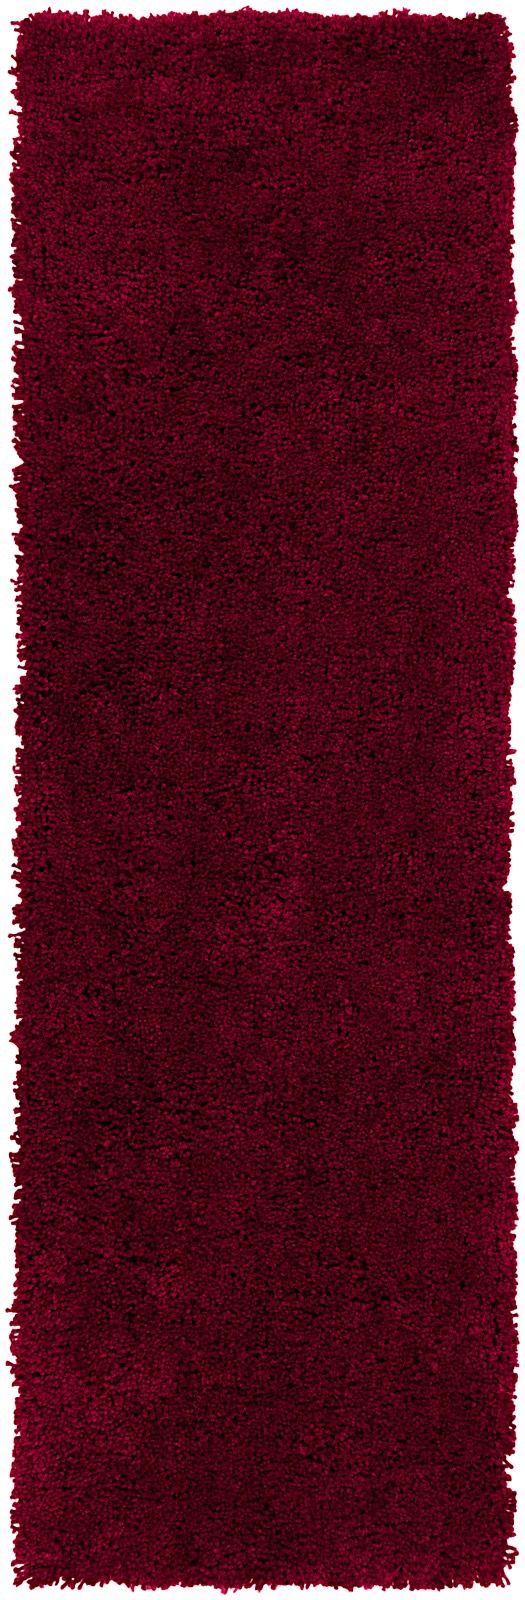 surya goddess shag area rug collection